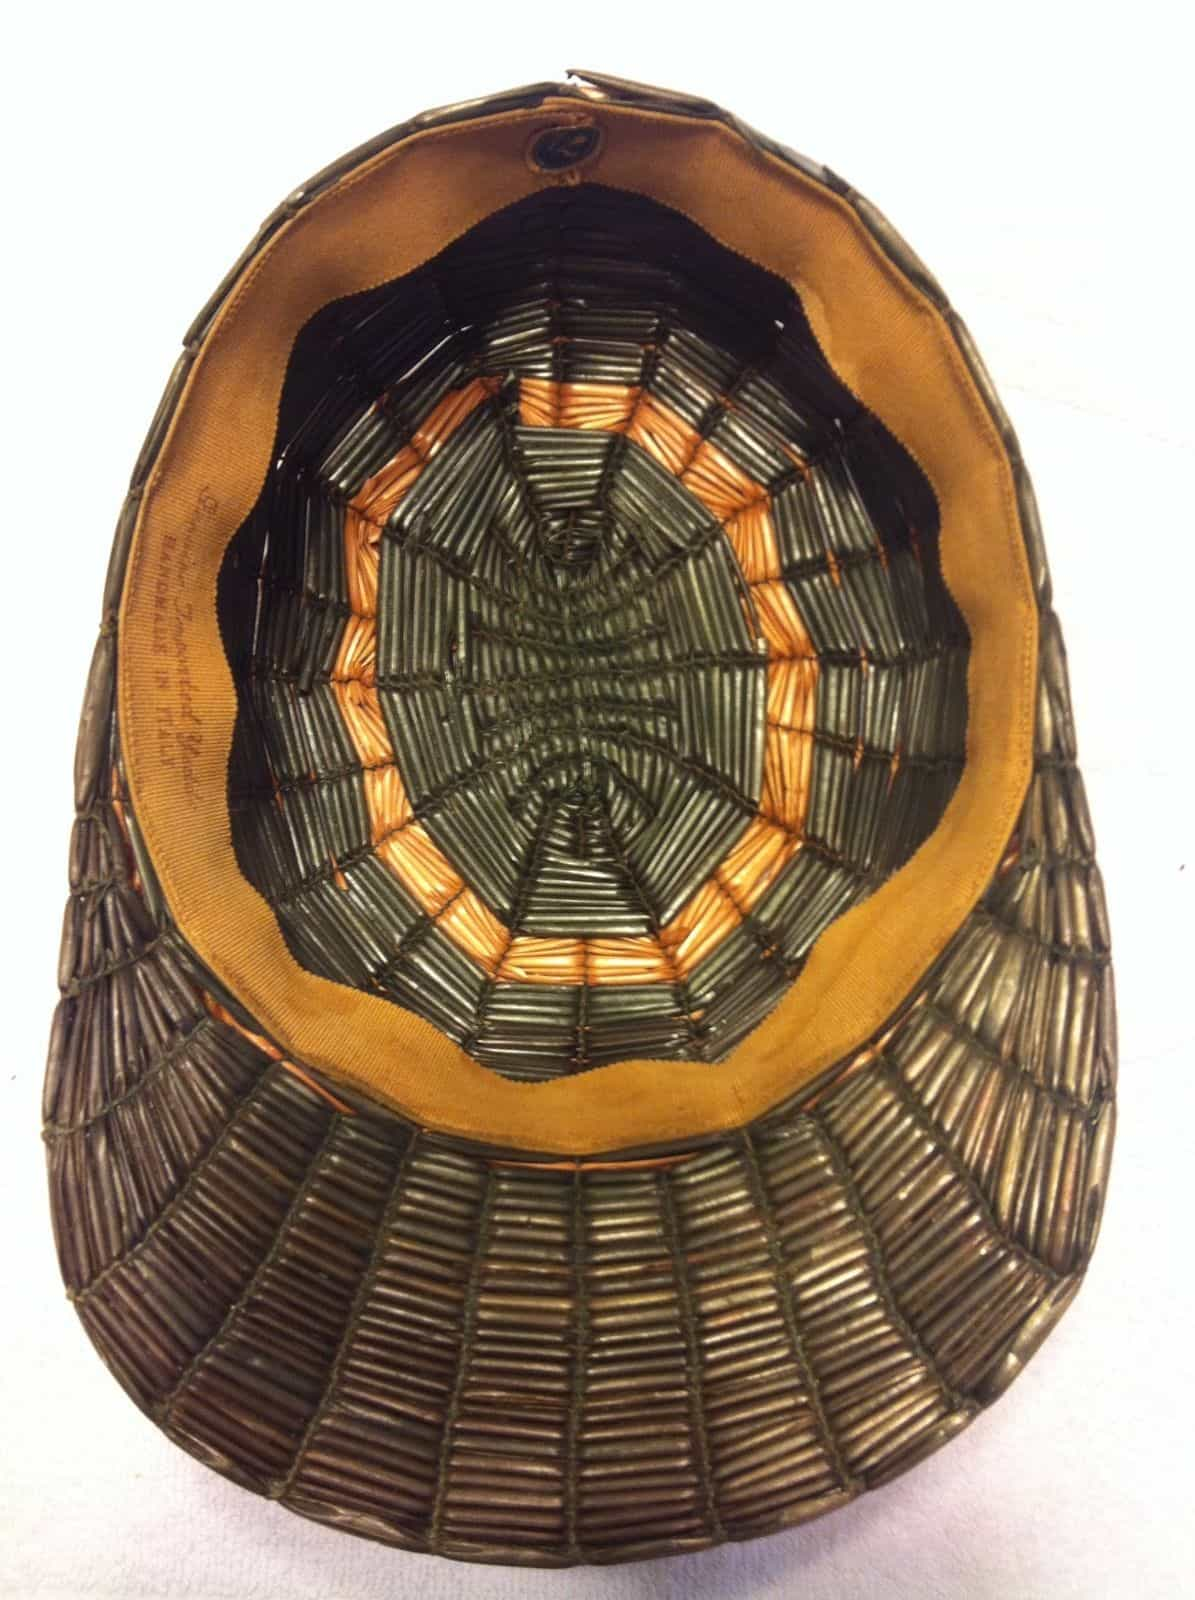 -Yeddo-hat-from-beneath-courtesy-The-Straw-Shop-Collection